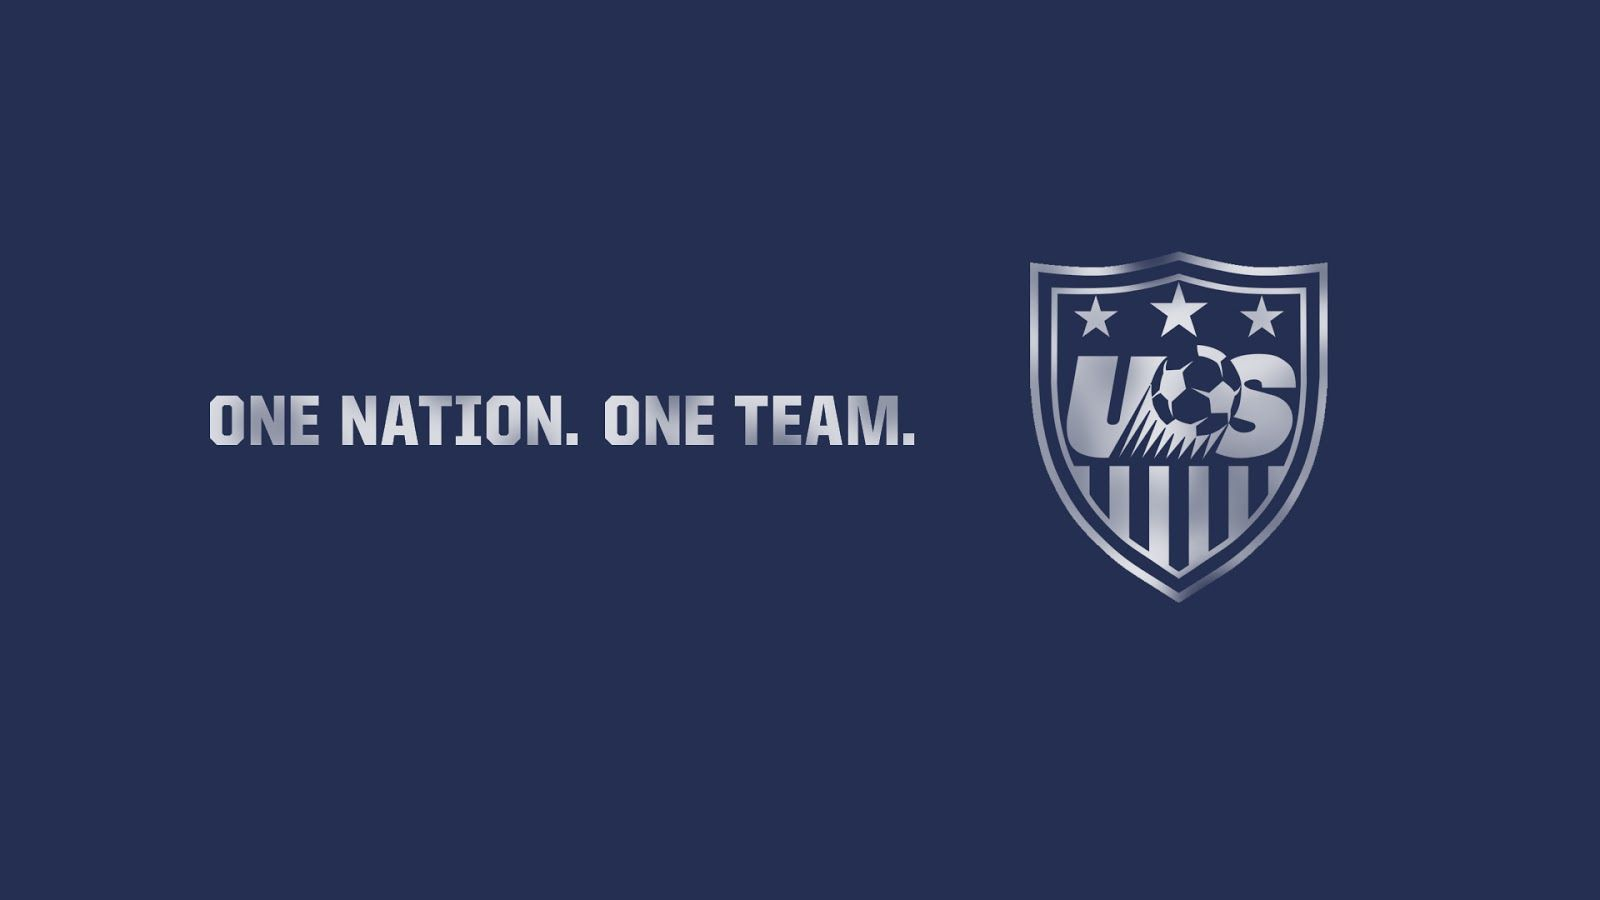 65 USMNT Wallpapers   Download at WallpaperBro 1600x900